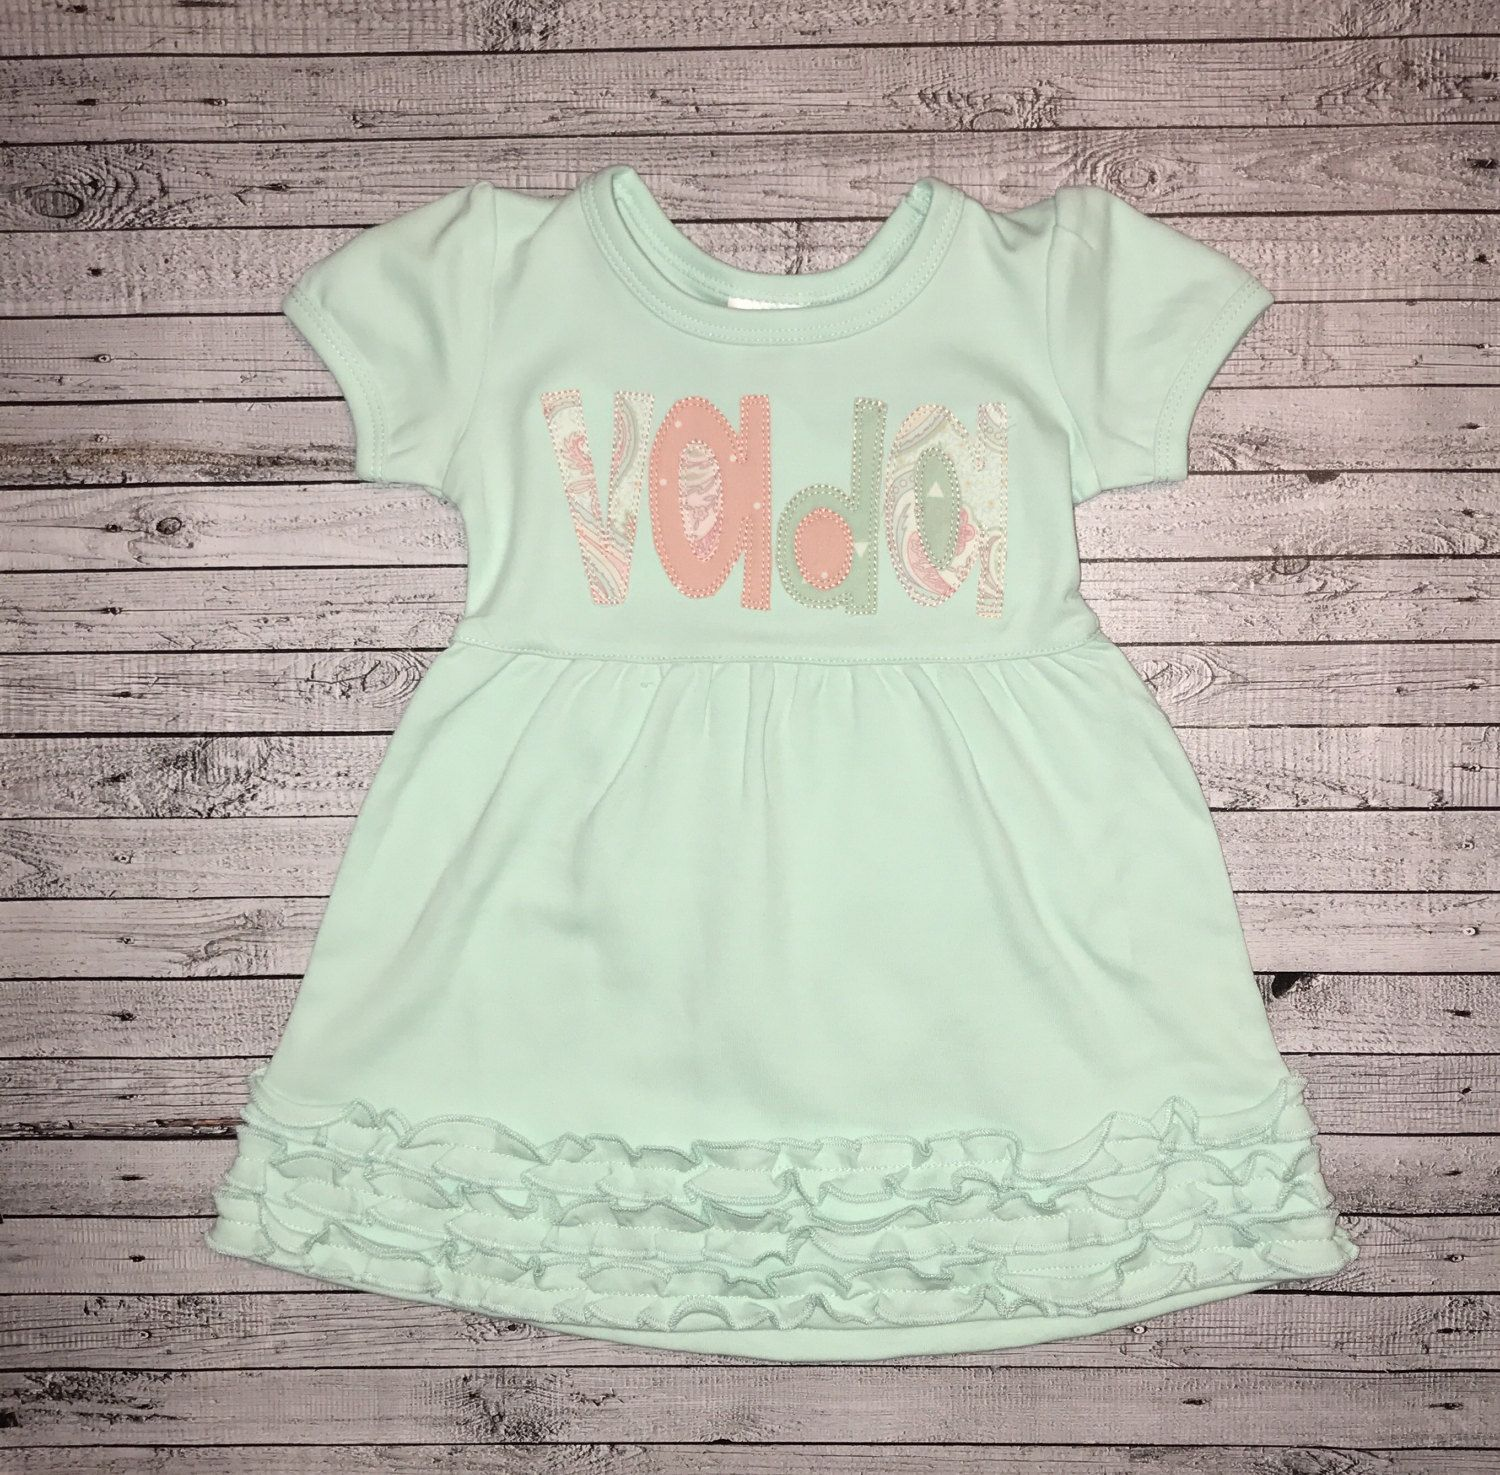 5469cdae6c6c Girl s Personalized Mint Ruffle Dress  Stitchy Font Applique ...